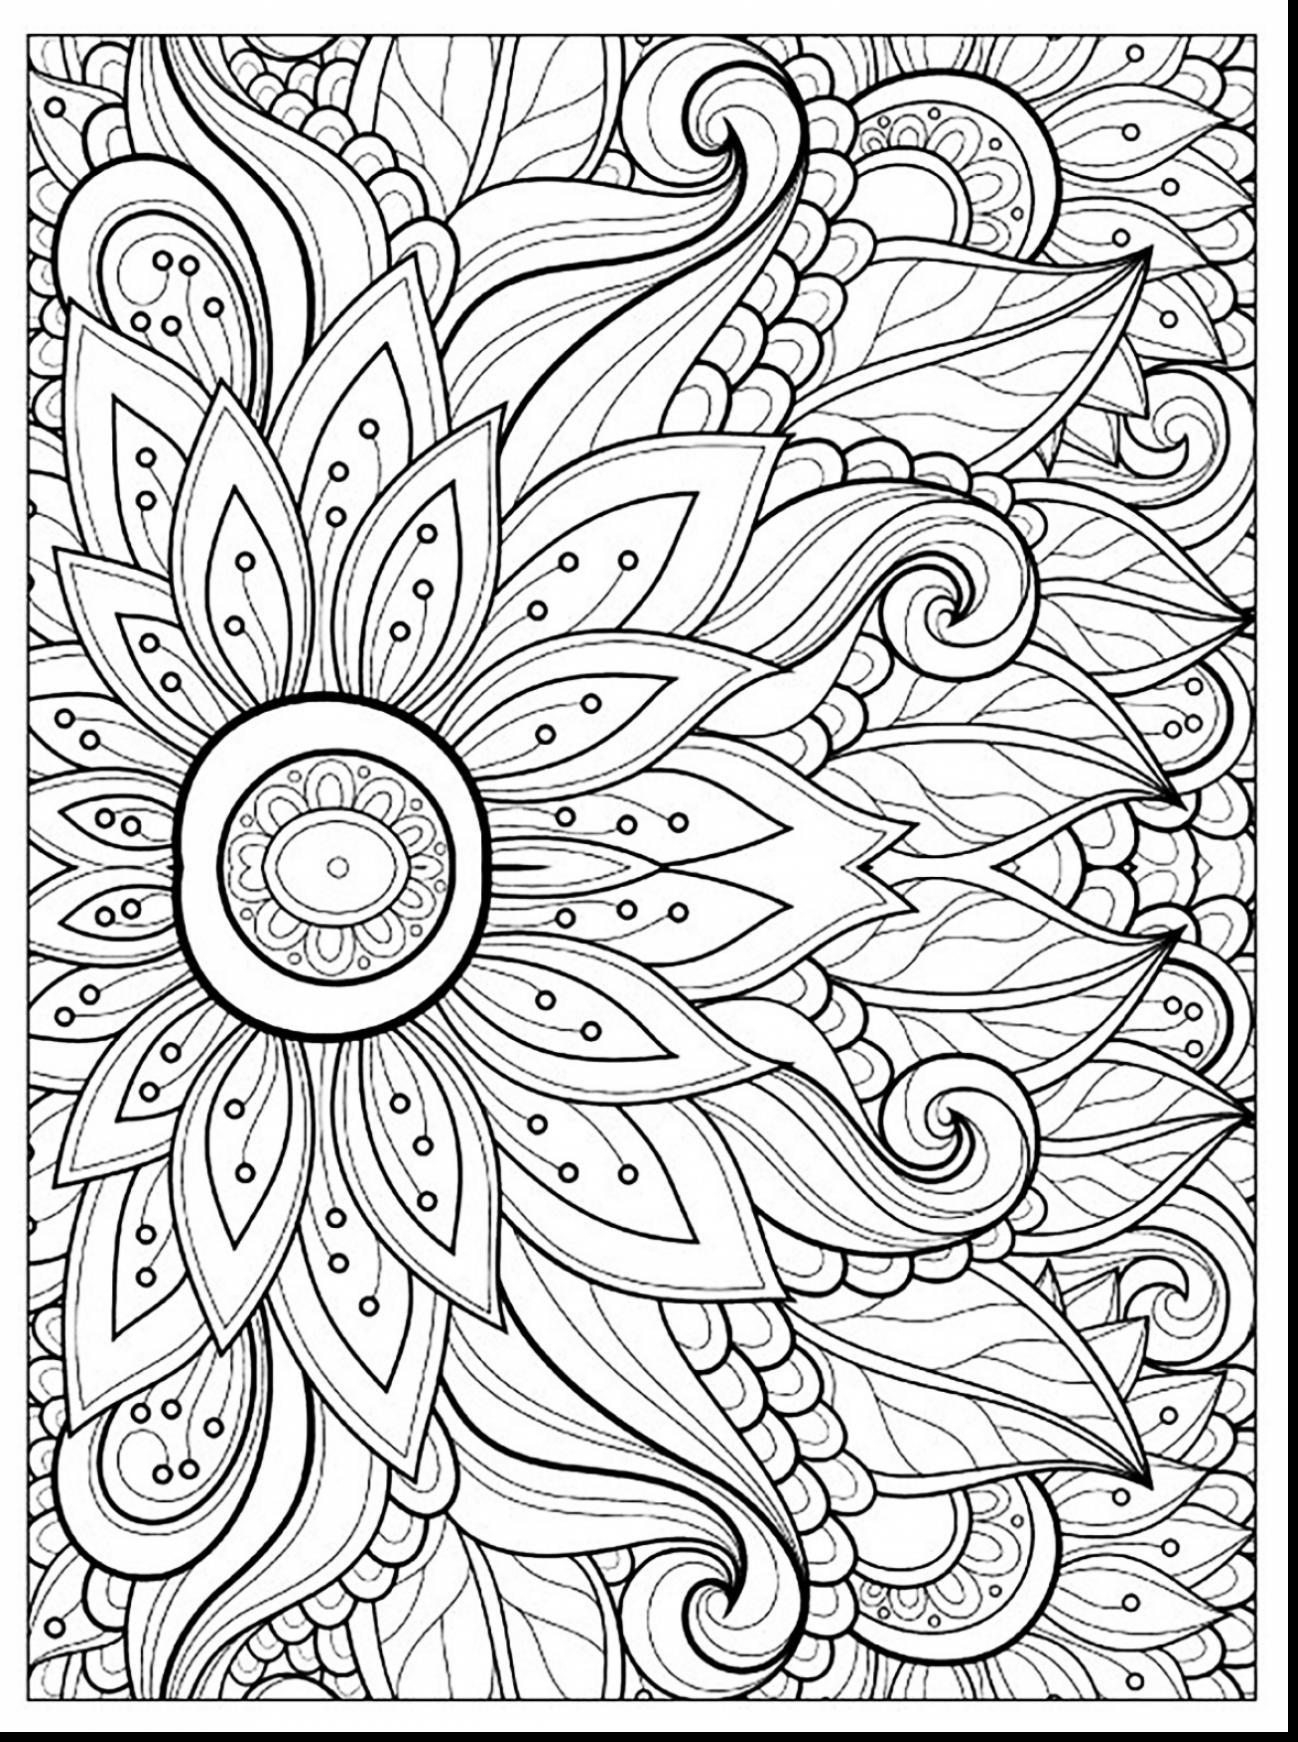 Fun Printable Coloring Pages For Adults At Getdrawings Free Download